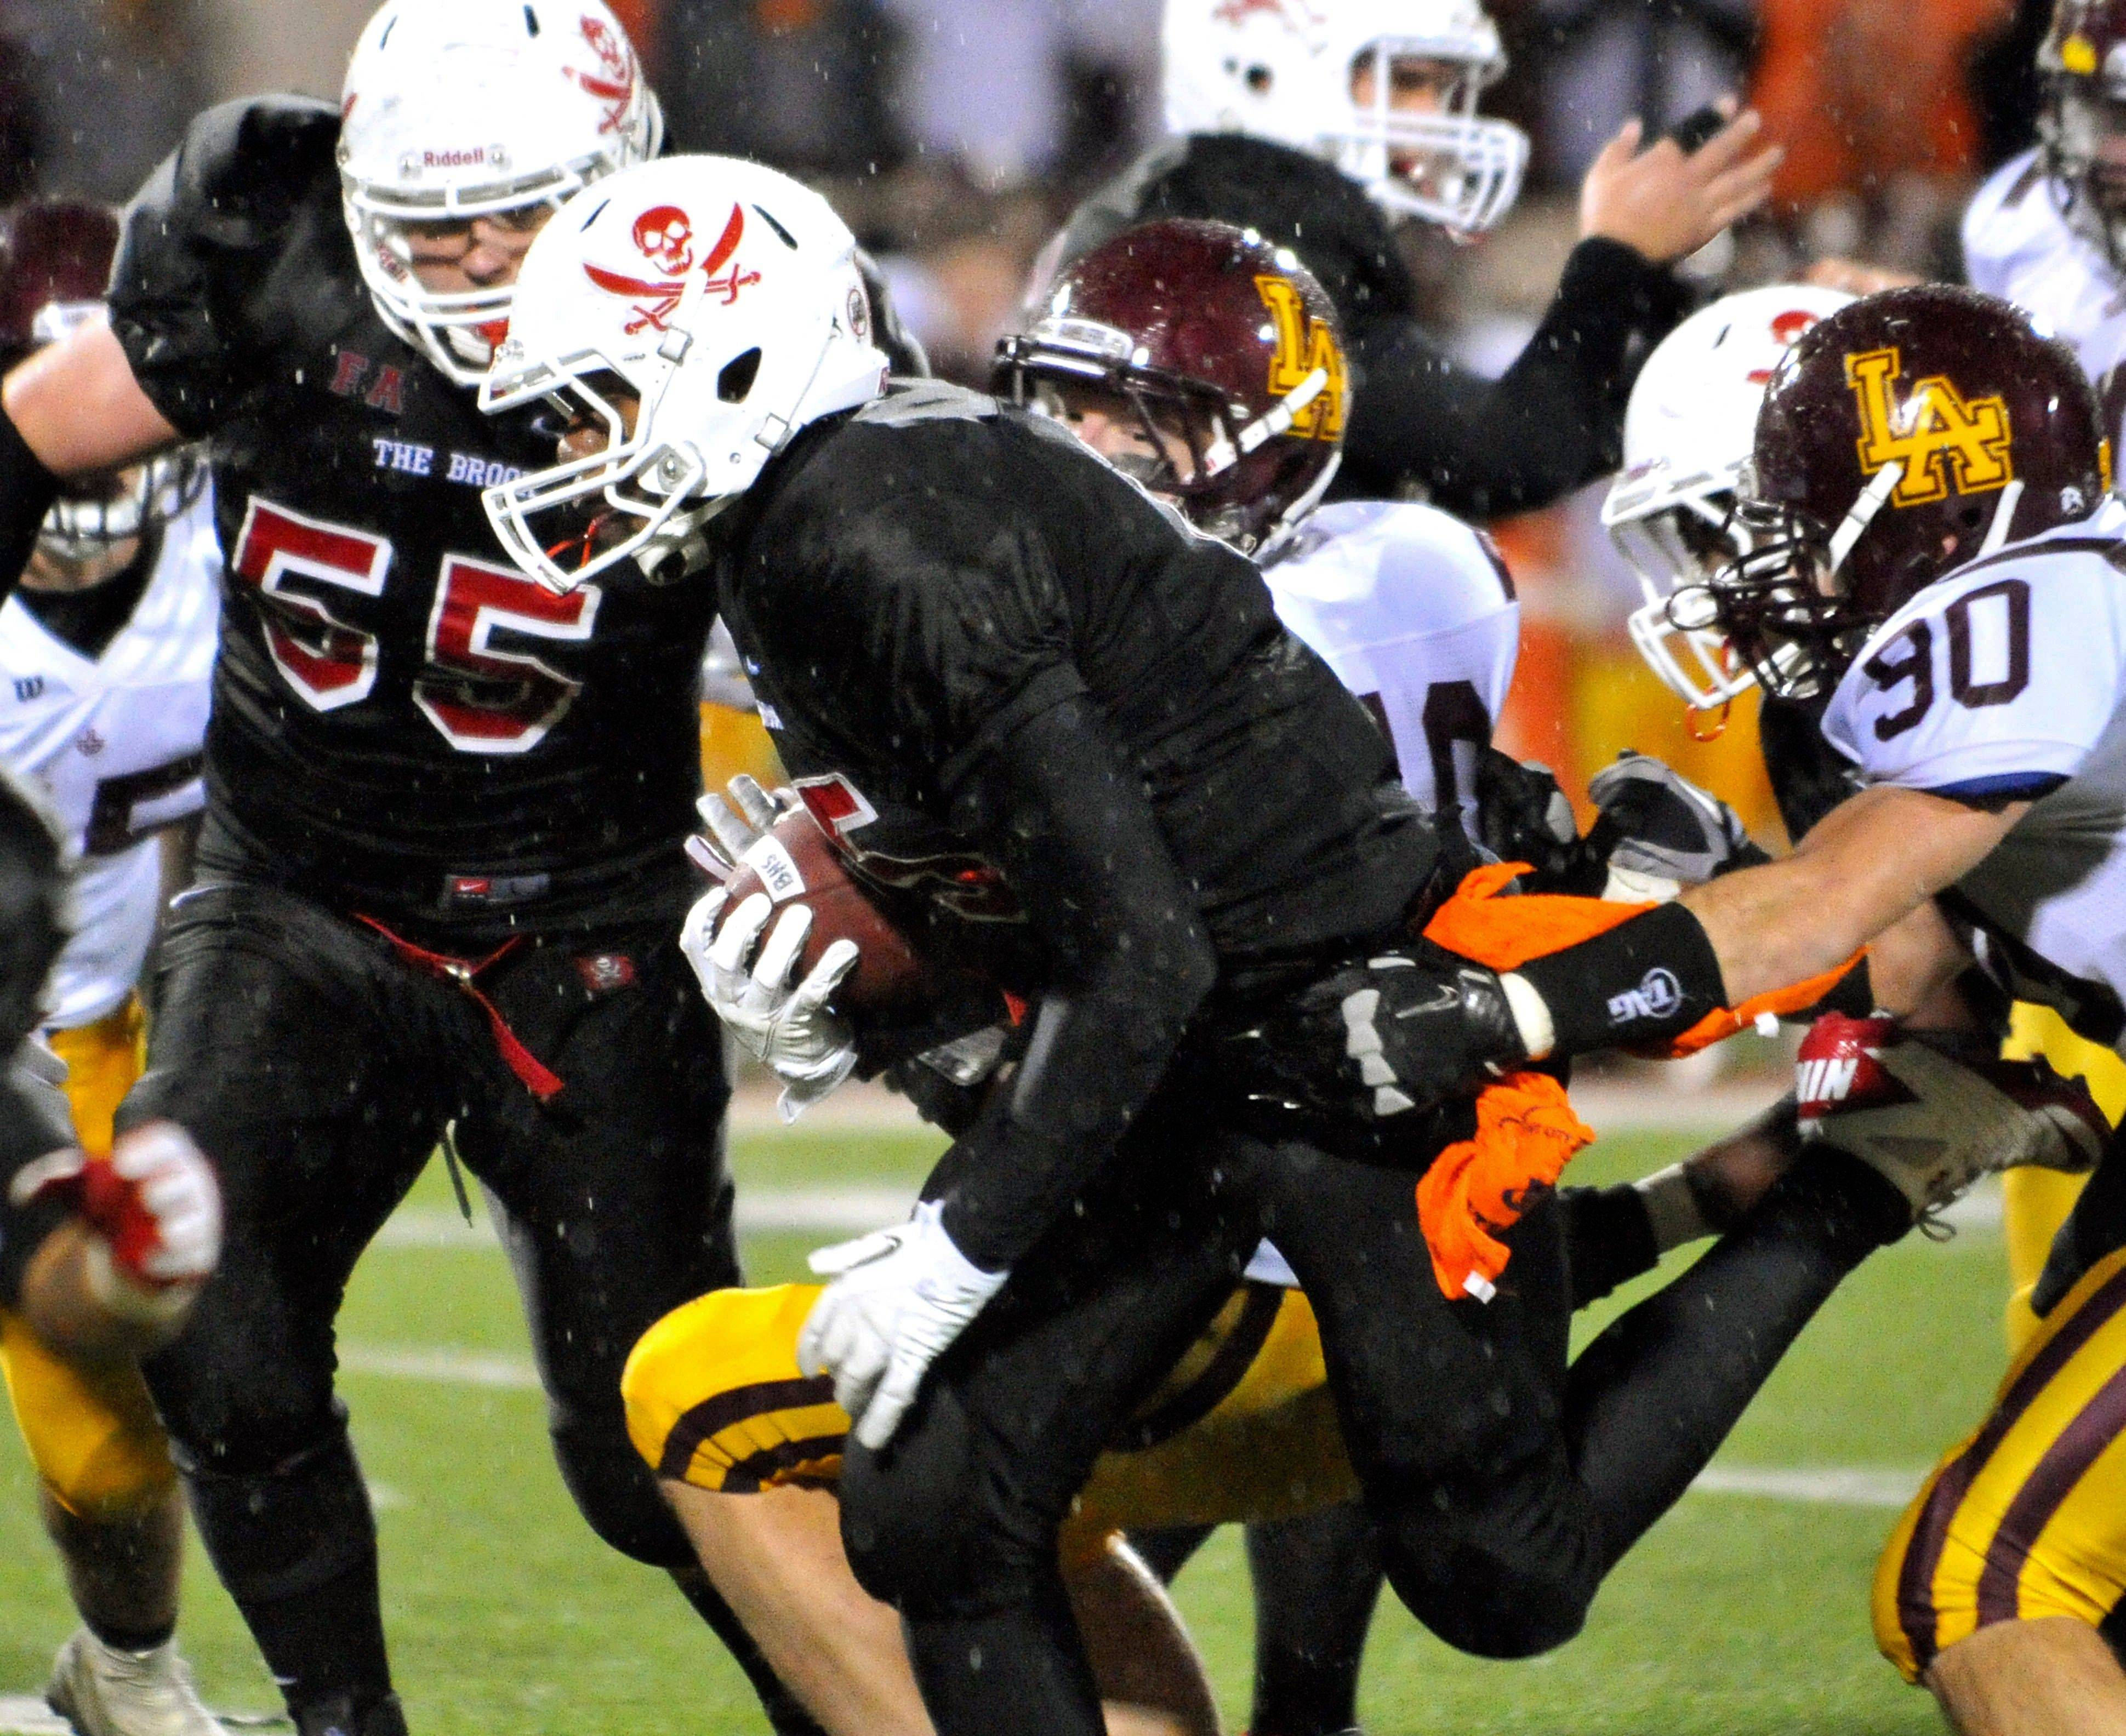 Bolingbrook's Aaron Bailey (15) finds a hole in the Loyola Academy defense for a 33-yard touchdown run.